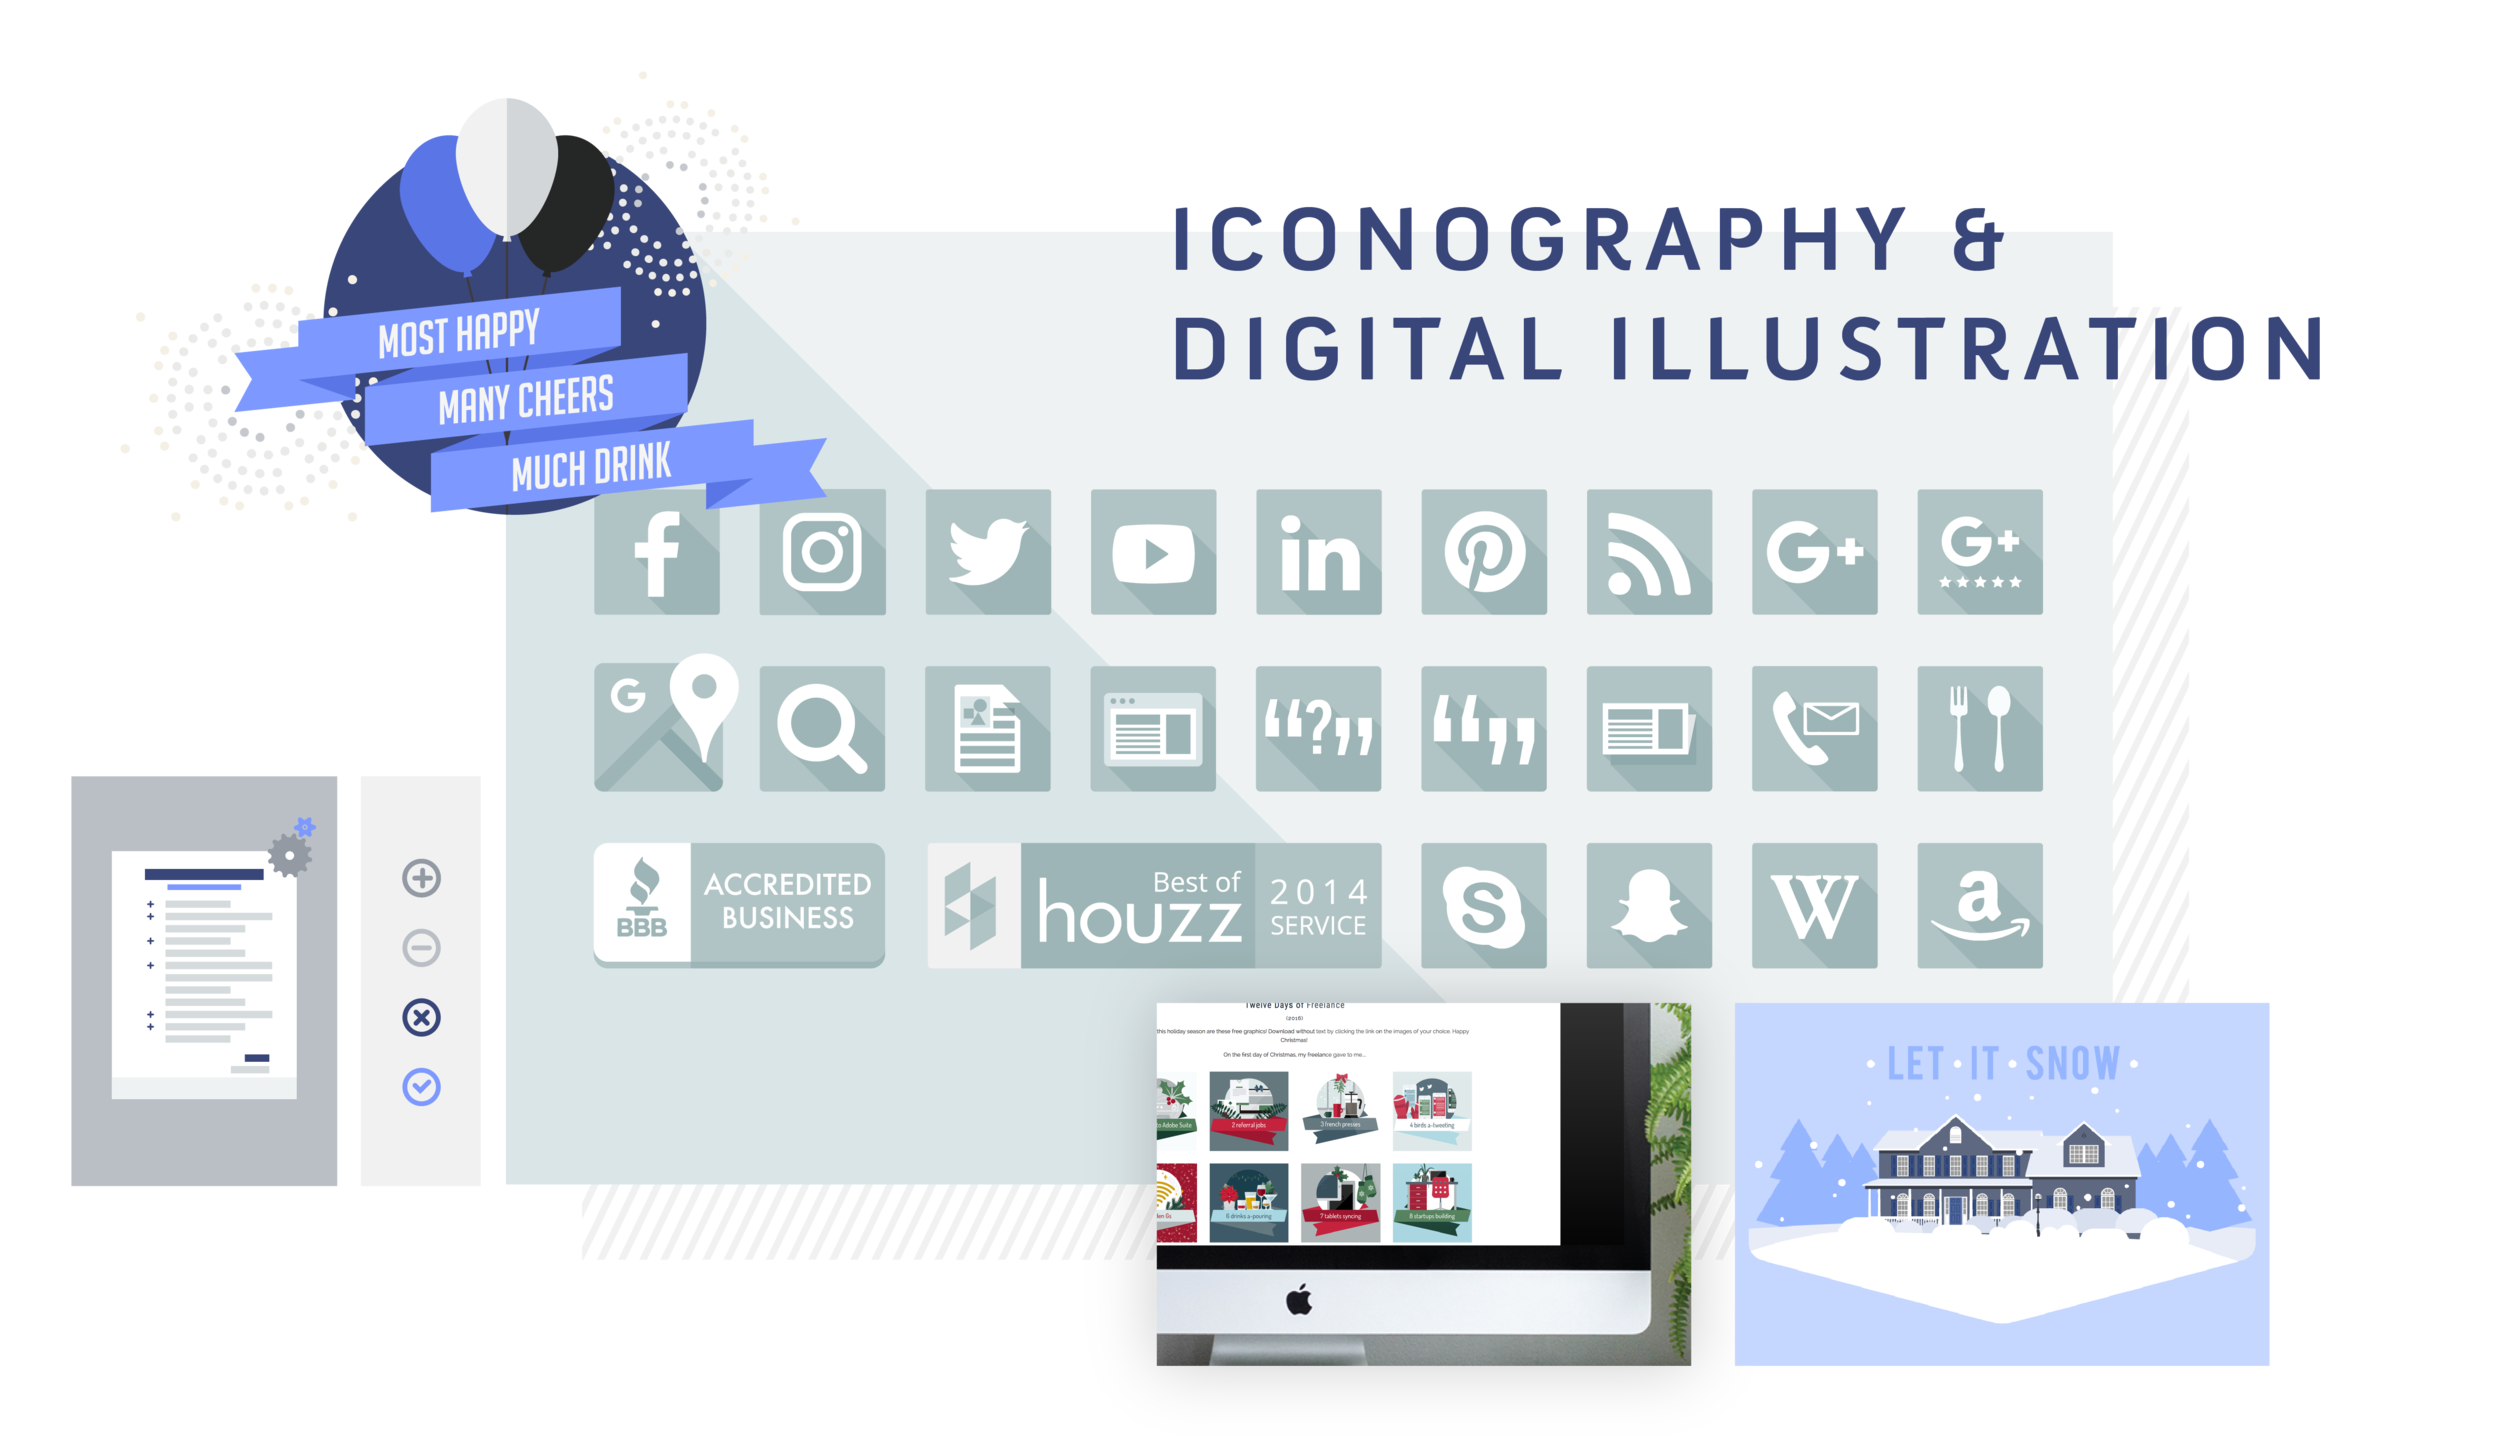 Page_Iconography & Digital Illustration.png